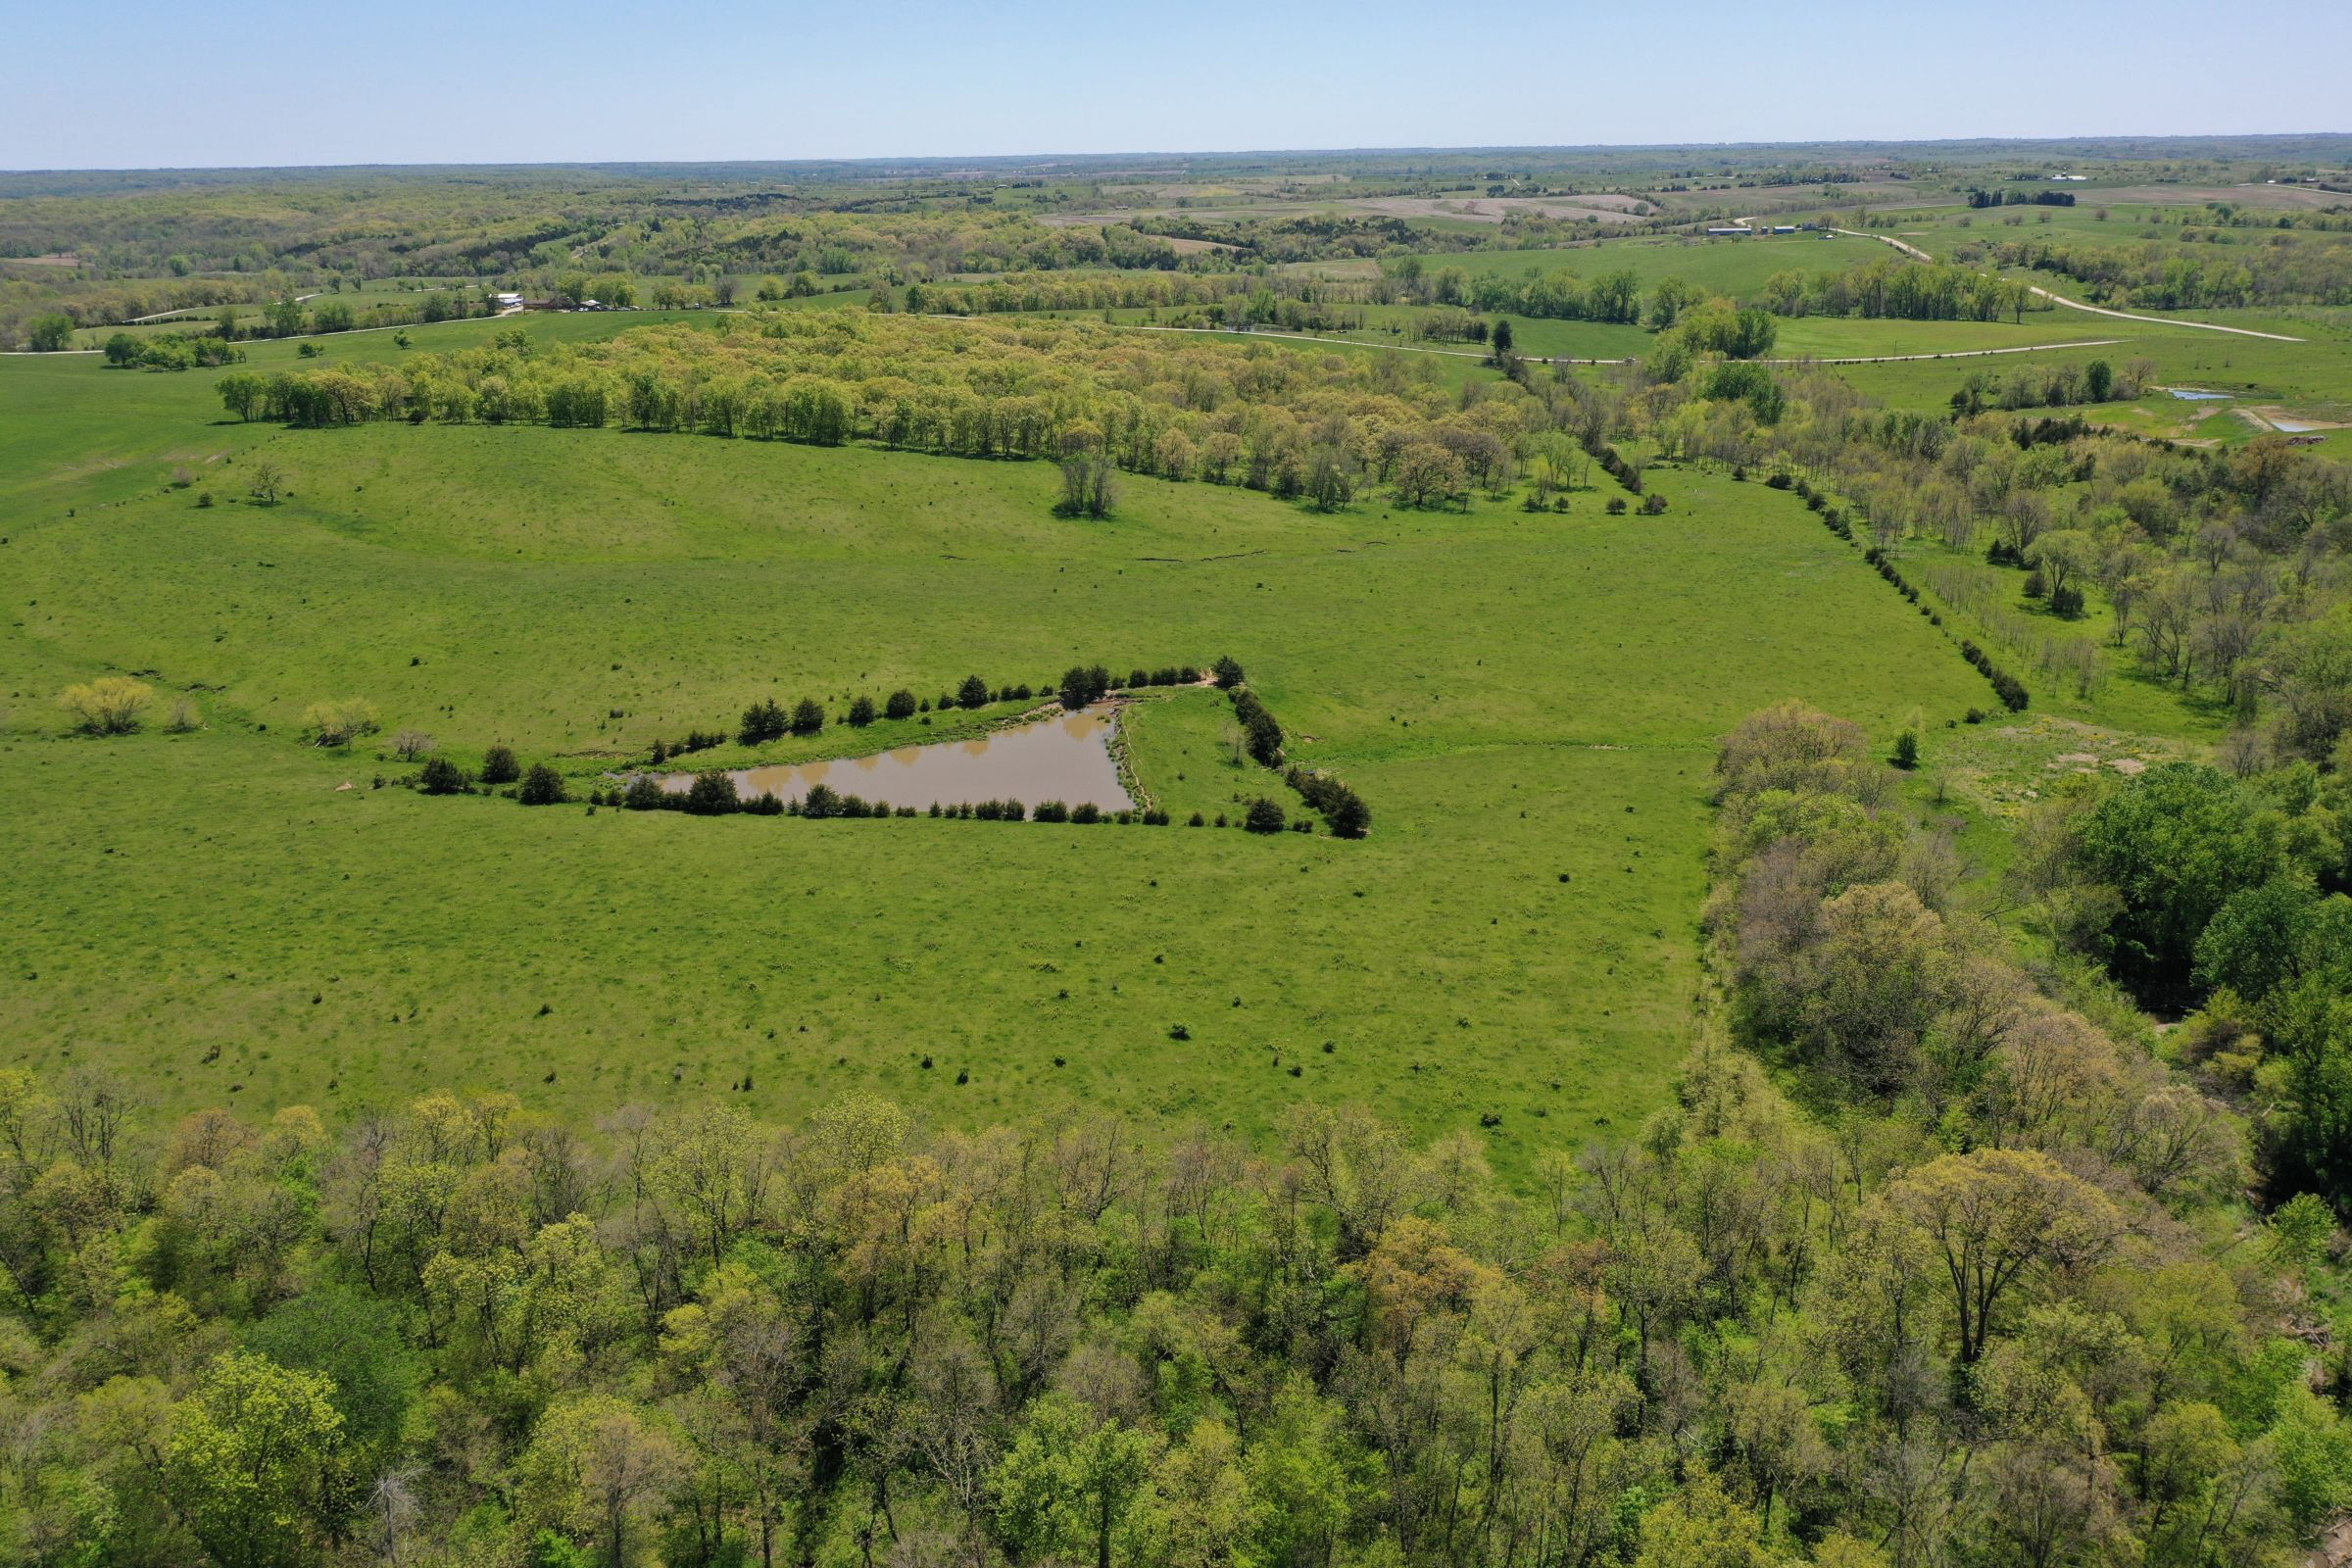 land-decatur-county-iowa-99-acres-listing-number-15525-3-2021-05-14-174542.JPG